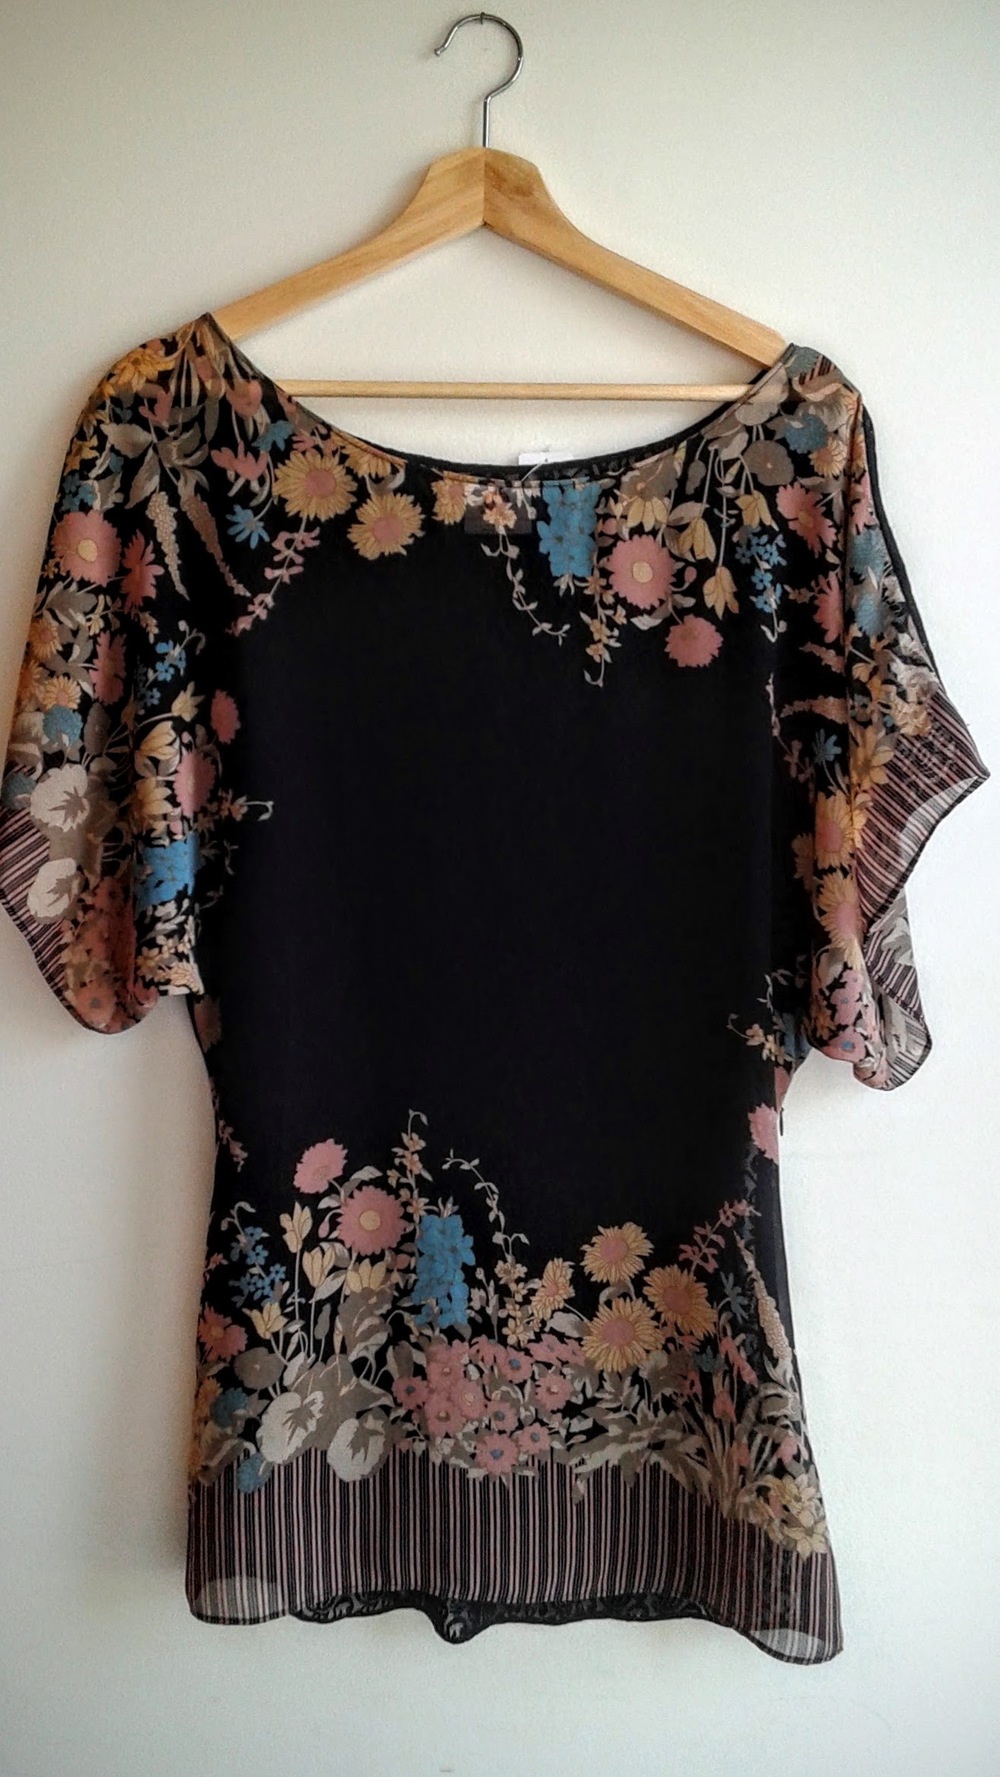 Free People tunic; Size S, $30